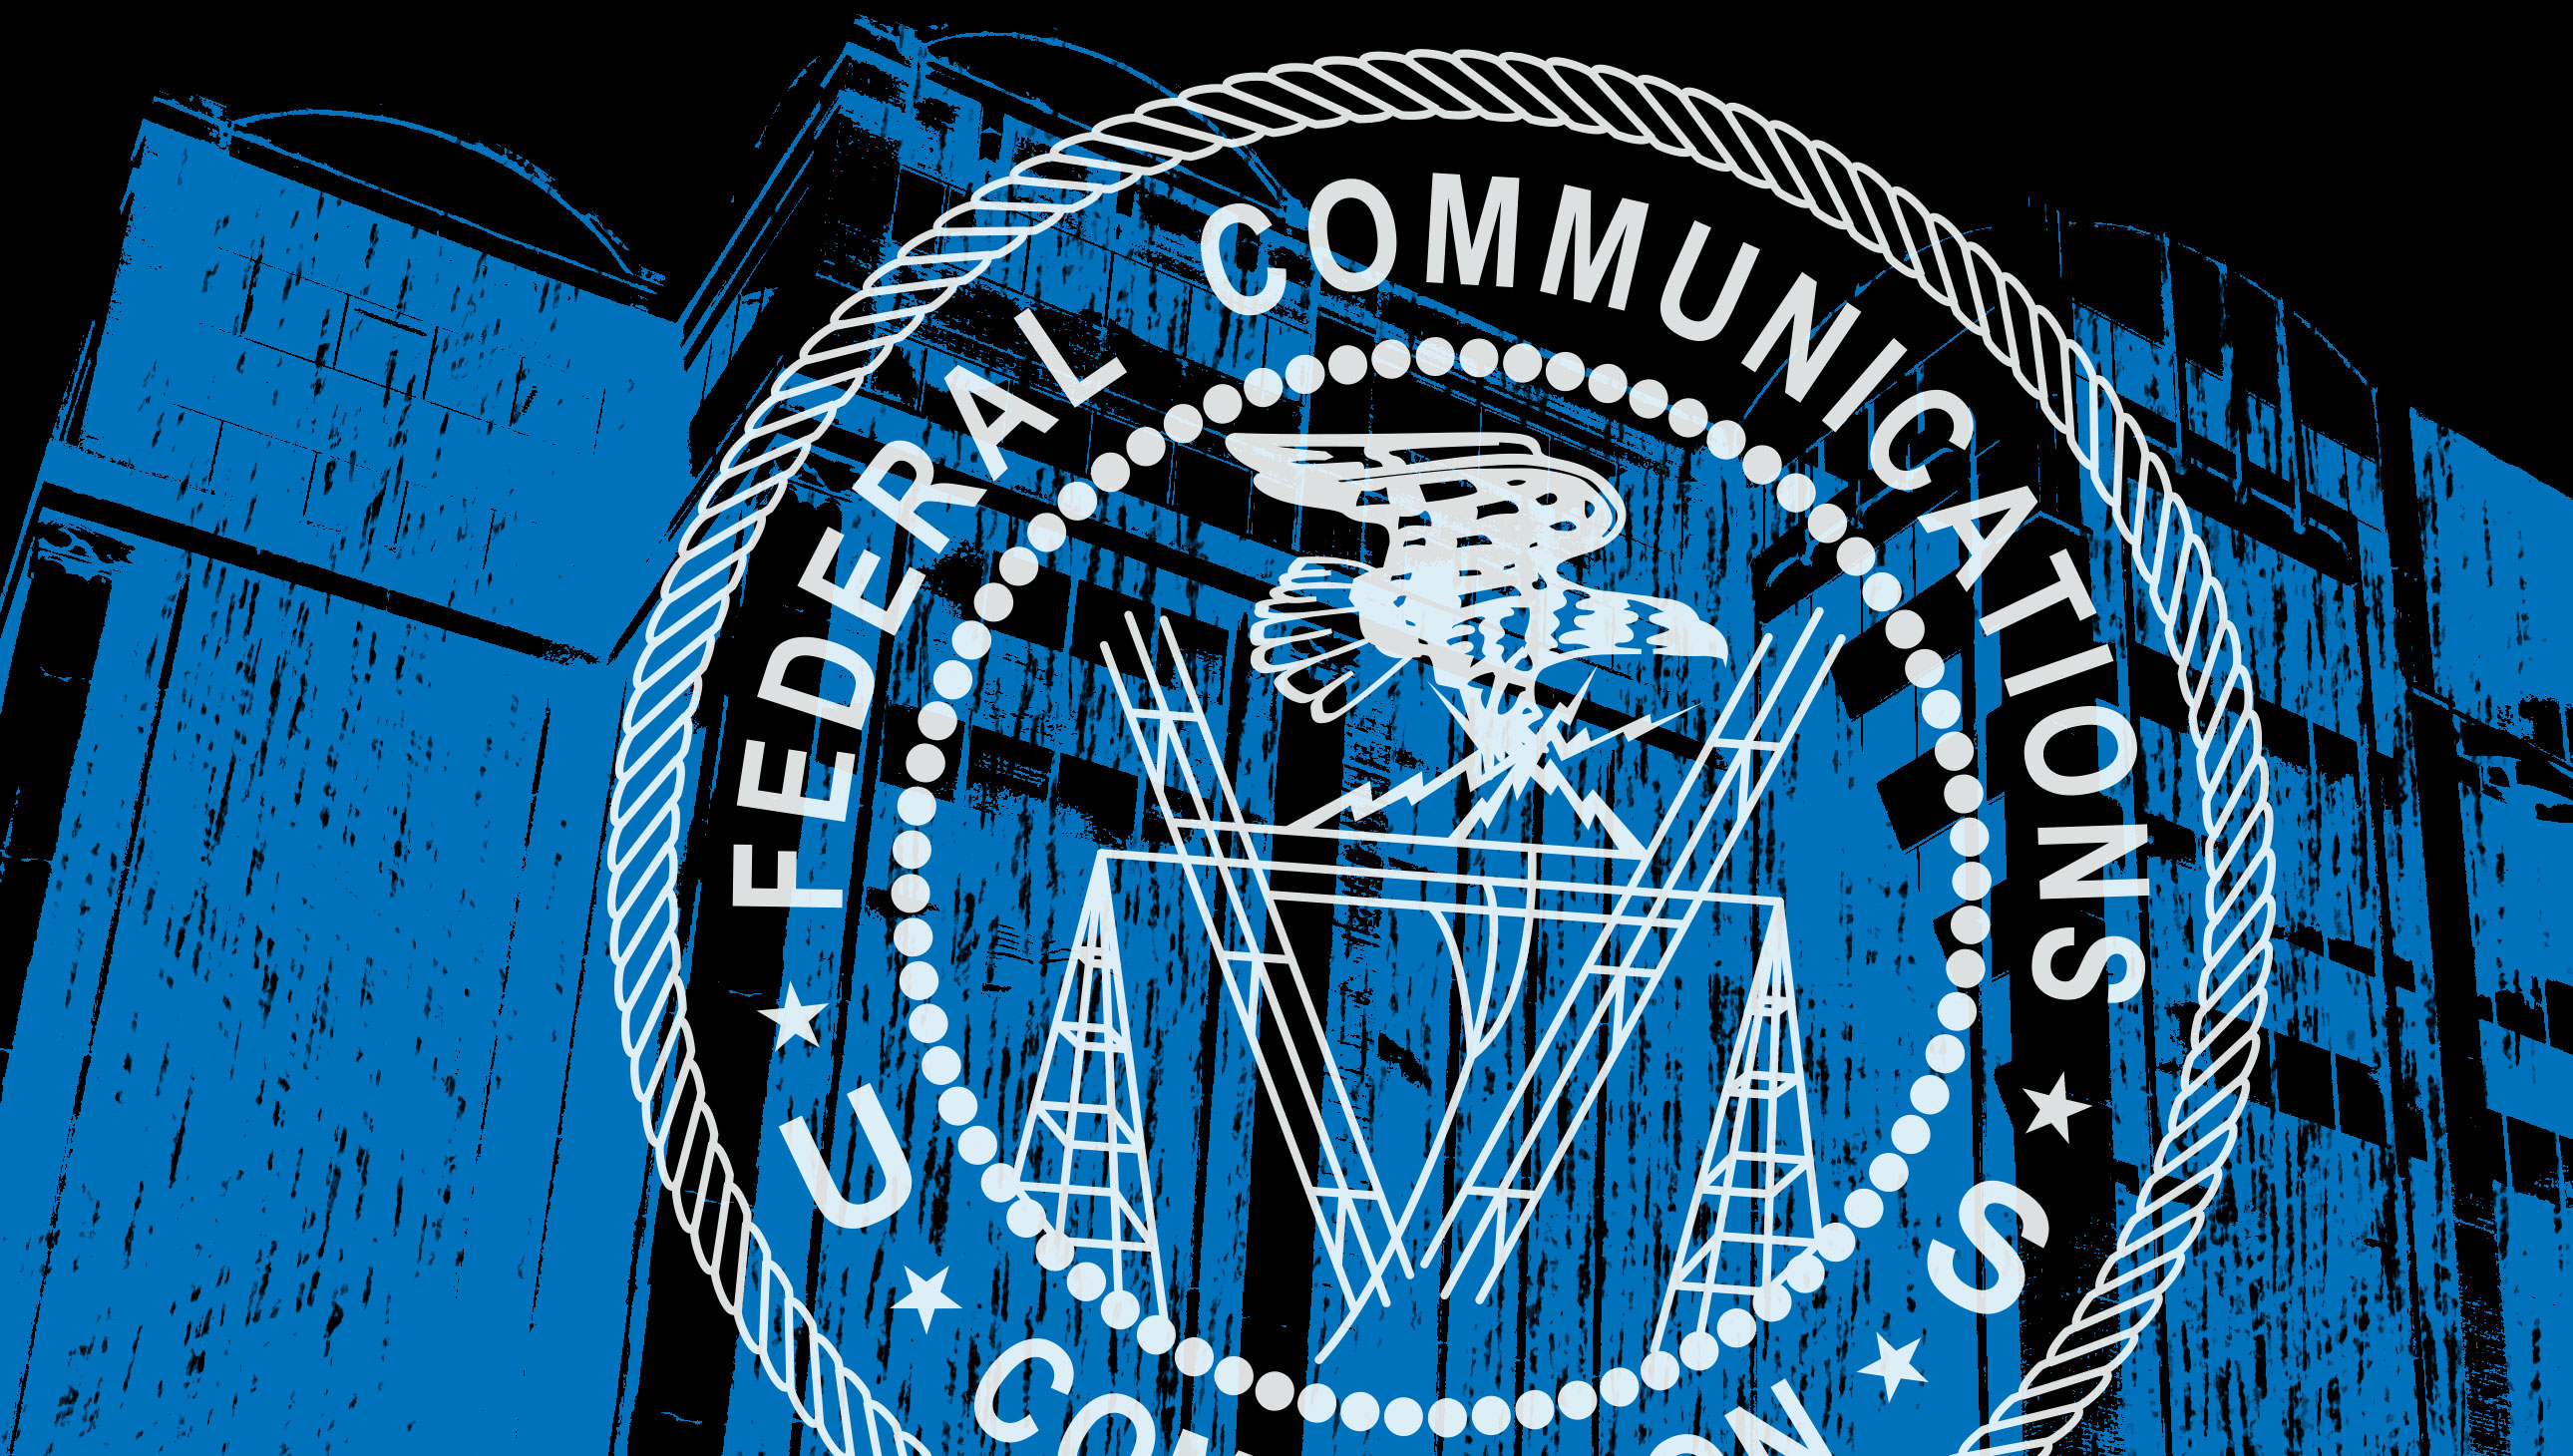 techcrunch.com - Devin Coldewey - The 21st Century Internet Act aims to enshrine net neutrality in law